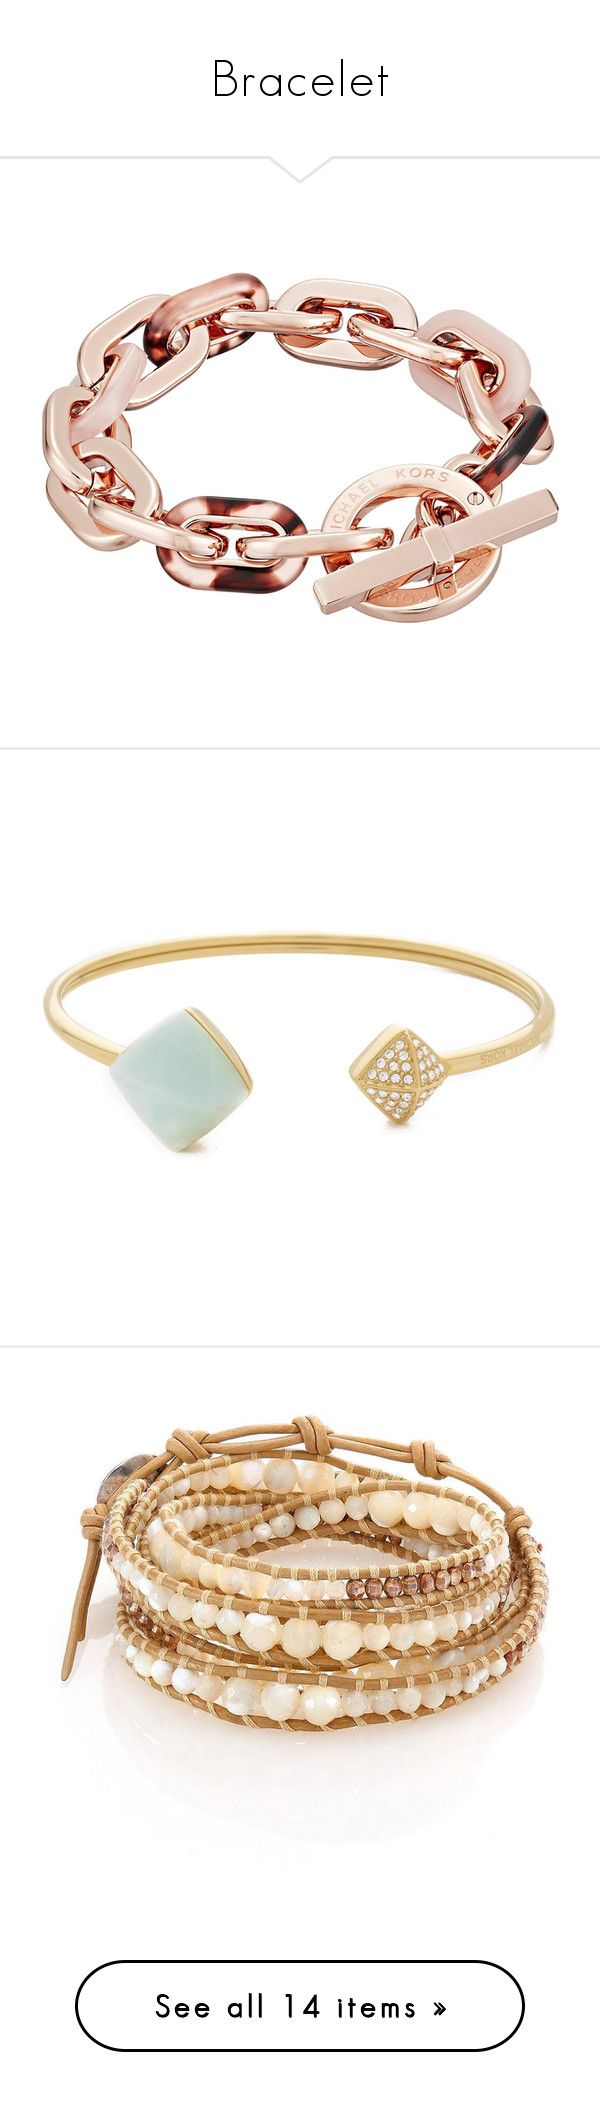 """Bracelet"" by patriciaaa02 ❤ liked on Polyvore featuring jewelry, bracelets, michael kors, rose gold jewelry, rose gold bangle, tortoise shell bangle, michael kors bangle, cz jewellery, cz jewelry and michael kors jewelry"